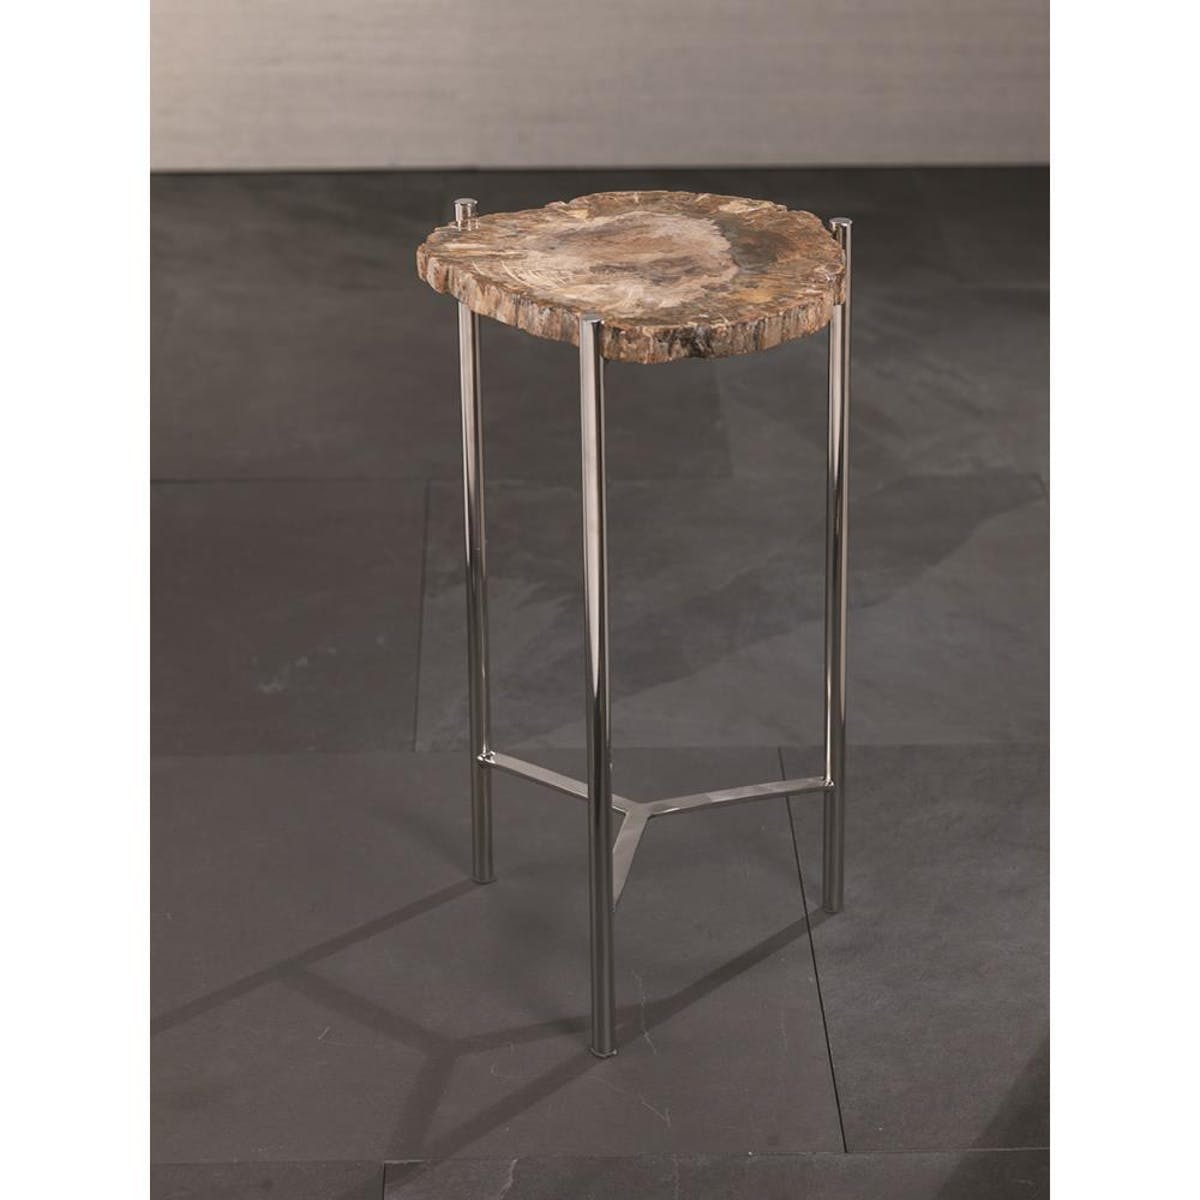 zodax pierce petrified wood accent table inch tall modish end high lamps rustic tables with wheels lifts pallet small outdoor mid century bedroom furniture glass top dining white